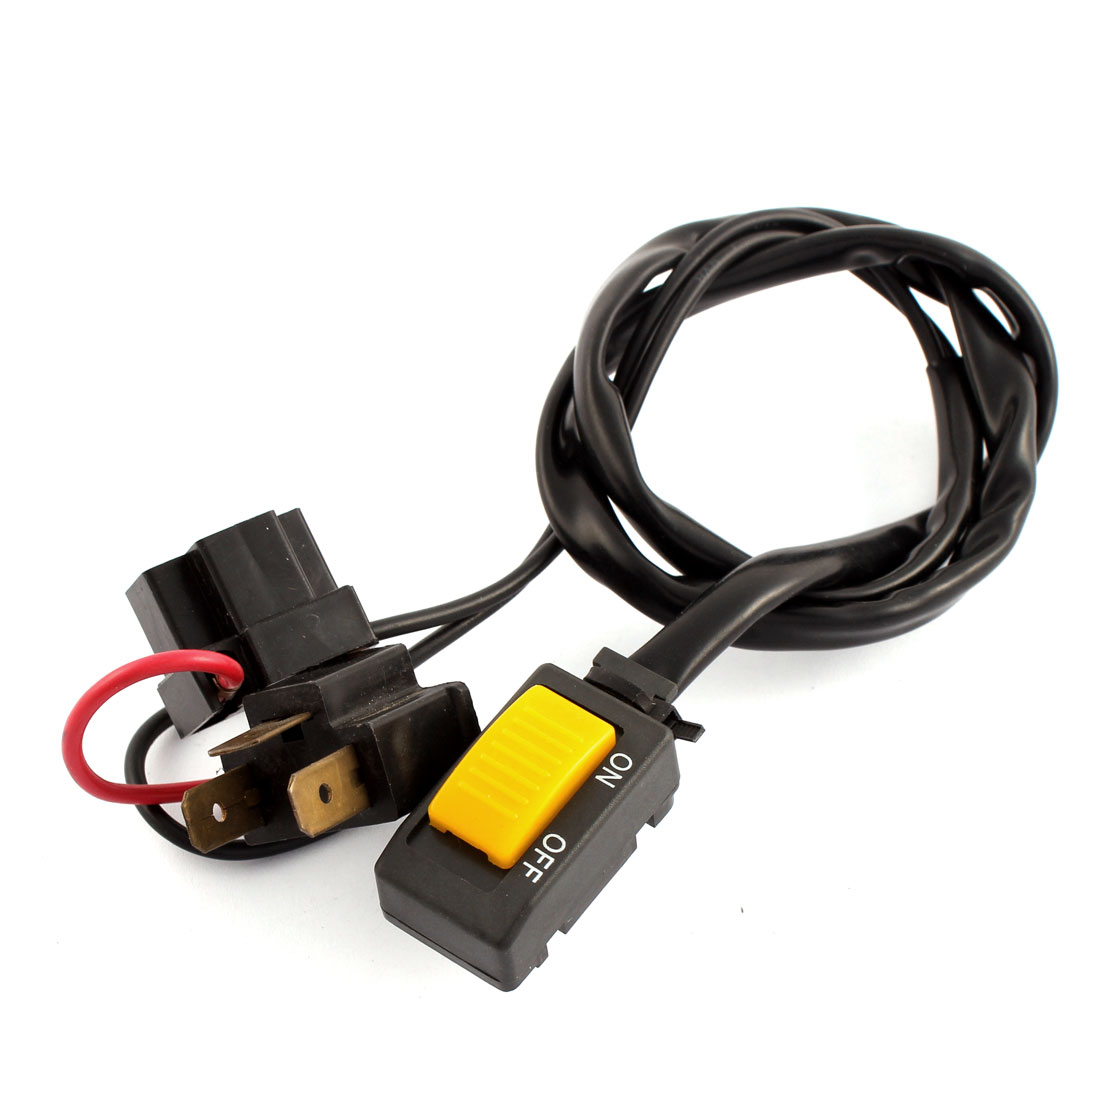 On/ Off 1 Socket Single Headlight Switch 12V for Motorcycles